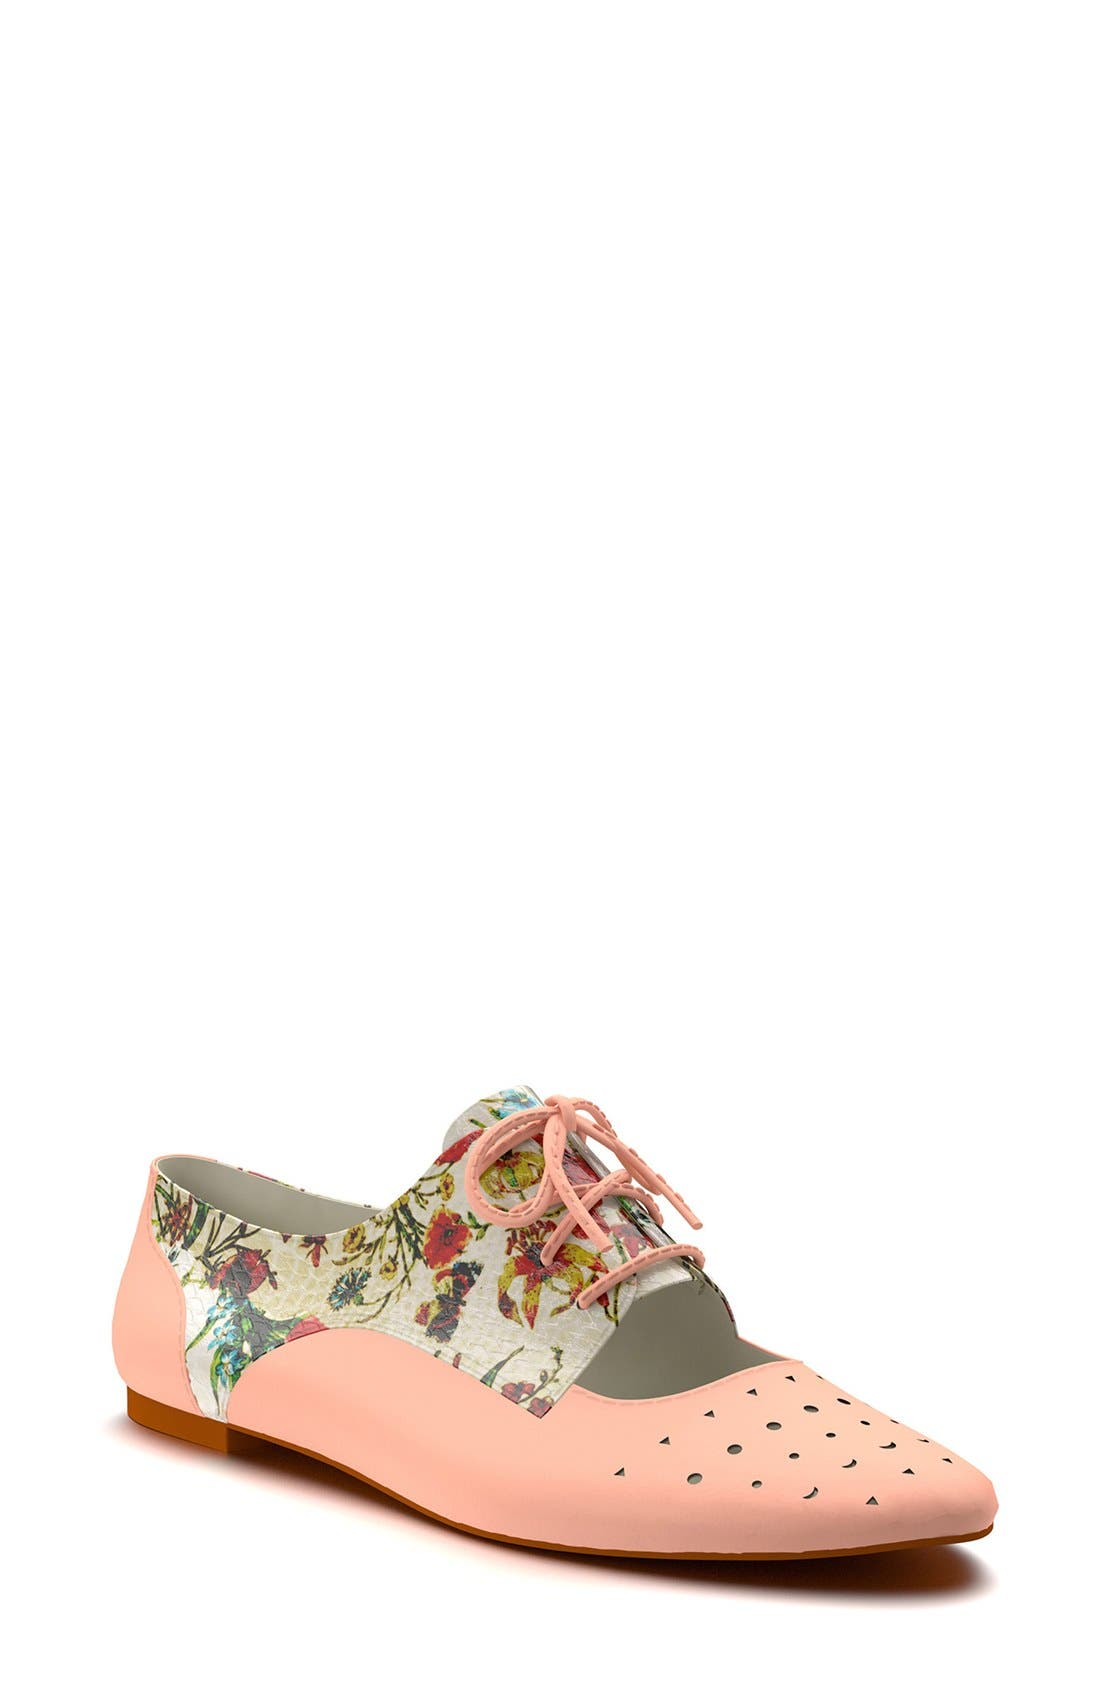 Alternate Image 1 Selected - Shoes of Prey Floral Print Cutout Oxford (Women)